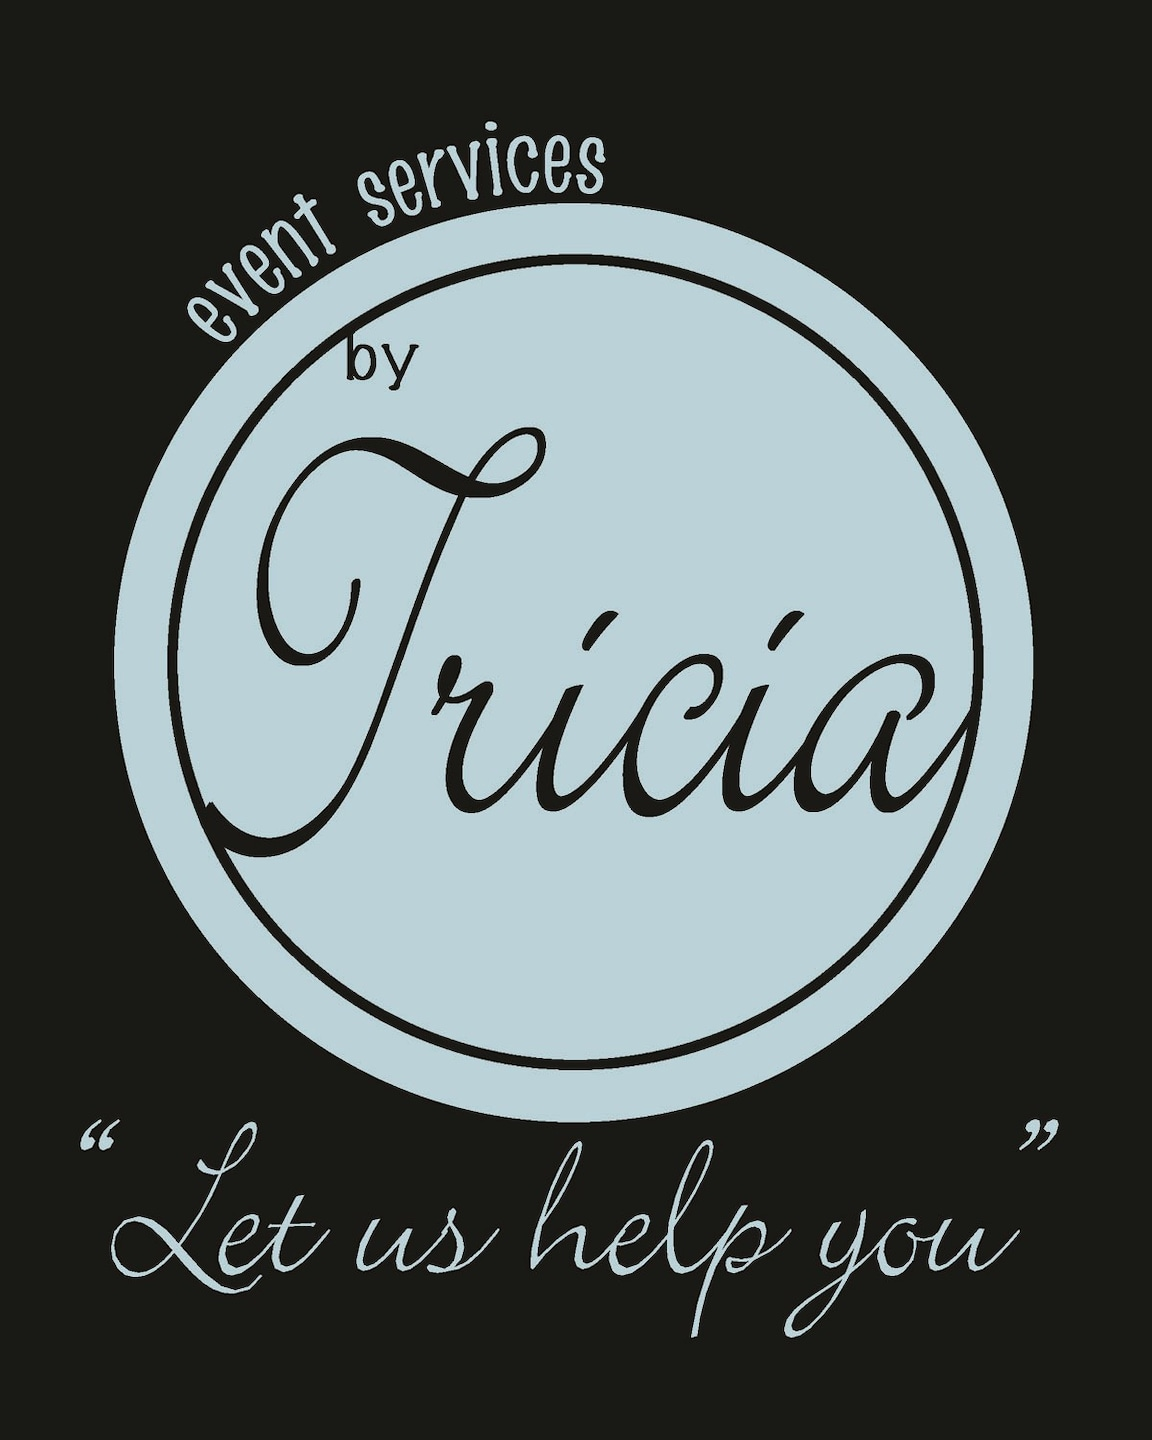 Event Services By Tricia